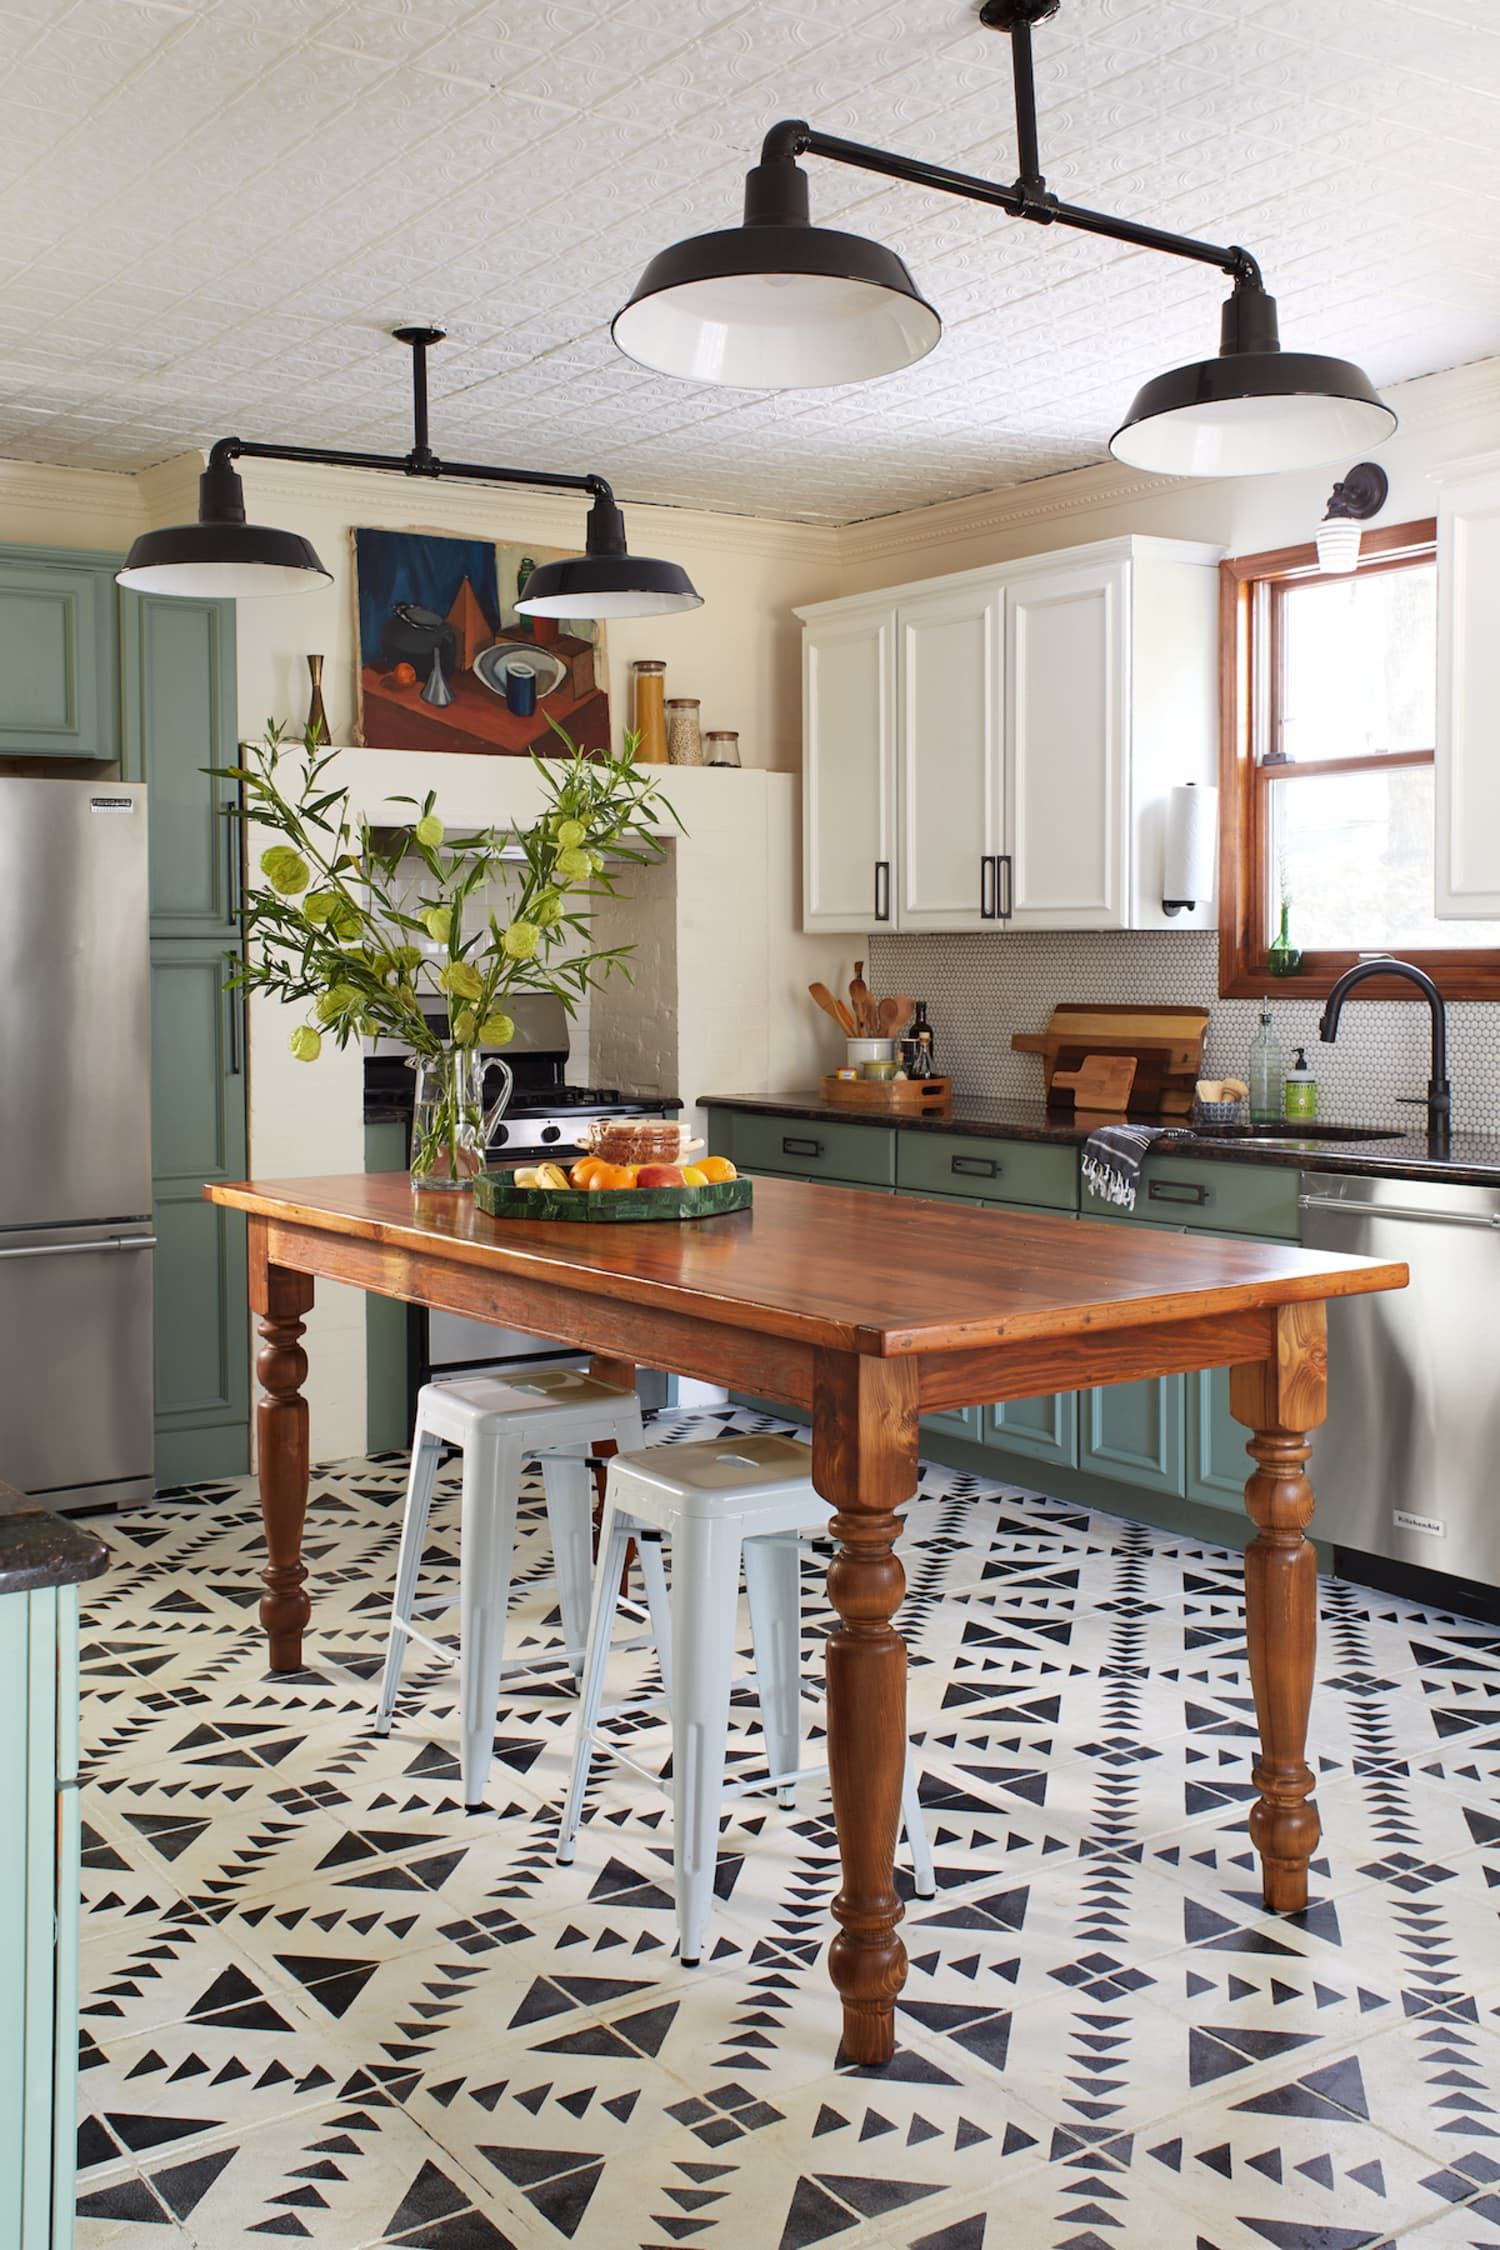 Chalk Paint Is The Practically Zero-Prep Way To Transform Your Kitchen Cabinets